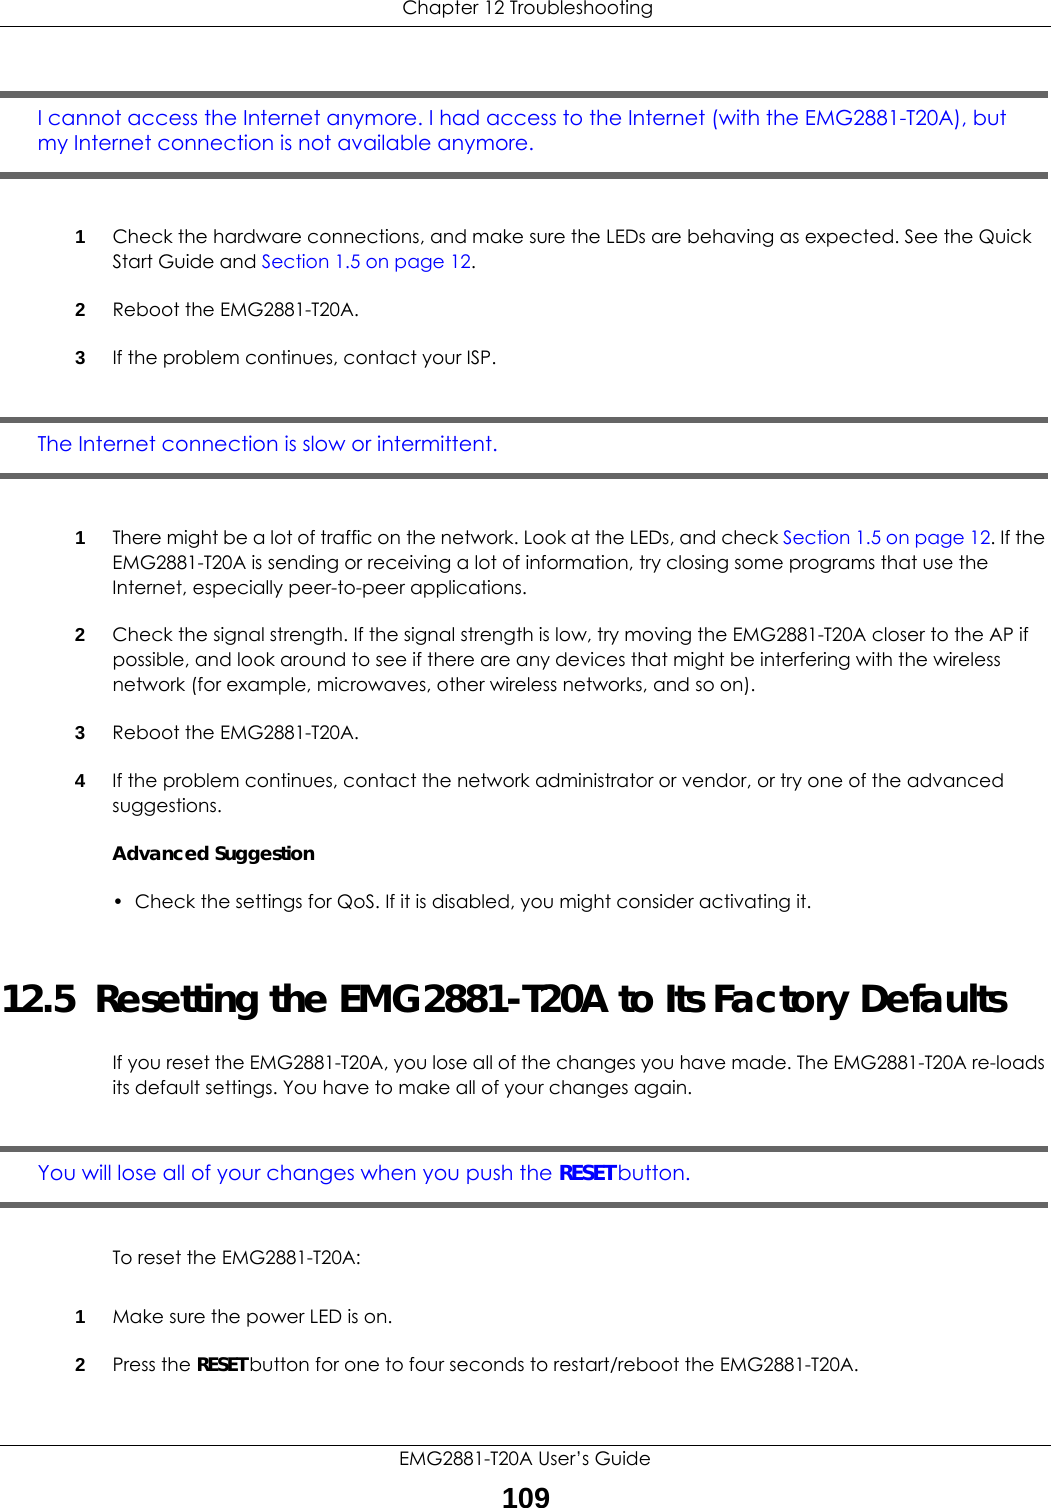 Chapter 12 TroubleshootingEMG2881-T20A User's Guide109I cannot access the Internet anymore. I had access to the Internet (with the EMG2881-T20A), but my Internet connection is not available anymore.1Check the hardware connections, and make sure the LEDs are behaving as expected. See the Quick Start Guide and Section 1.5 on page 12. 2Reboot the EMG2881-T20A.3If the problem continues, contact your ISP. The Internet connection is slow or intermittent.1There might be a lot of traffic on the network. Look at the LEDs, and check Section 1.5 on page 12. If the EMG2881-T20A is sending or receiving a lot of information, try closing some programs that use the Internet, especially peer-to-peer applications.2Check the signal strength. If the signal strength is low, try moving the EMG2881-T20A closer to the AP if possible, and look around to see if there are any devices that might be interfering with the wireless network (for example, microwaves, other wireless networks, and so on).3Reboot the EMG2881-T20A.4If the problem continues, contact the network administrator or vendor, or try one of the advanced suggestions.Advanced Suggestion• Check the settings for QoS. If it is disabled, you might consider activating it.12.5  Resetting the EMG2881-T20A to Its Factory Defaults If you reset the EMG2881-T20A, you lose all of the changes you have made. The EMG2881-T20A re-loads its default settings. You have to make all of your changes again.You will lose all of your changes when you push the RESET button.To reset the EMG2881-T20A:1Make sure the power LED is on.2Press the RESET button for one to four seconds to restart/reboot the EMG2881-T20A.